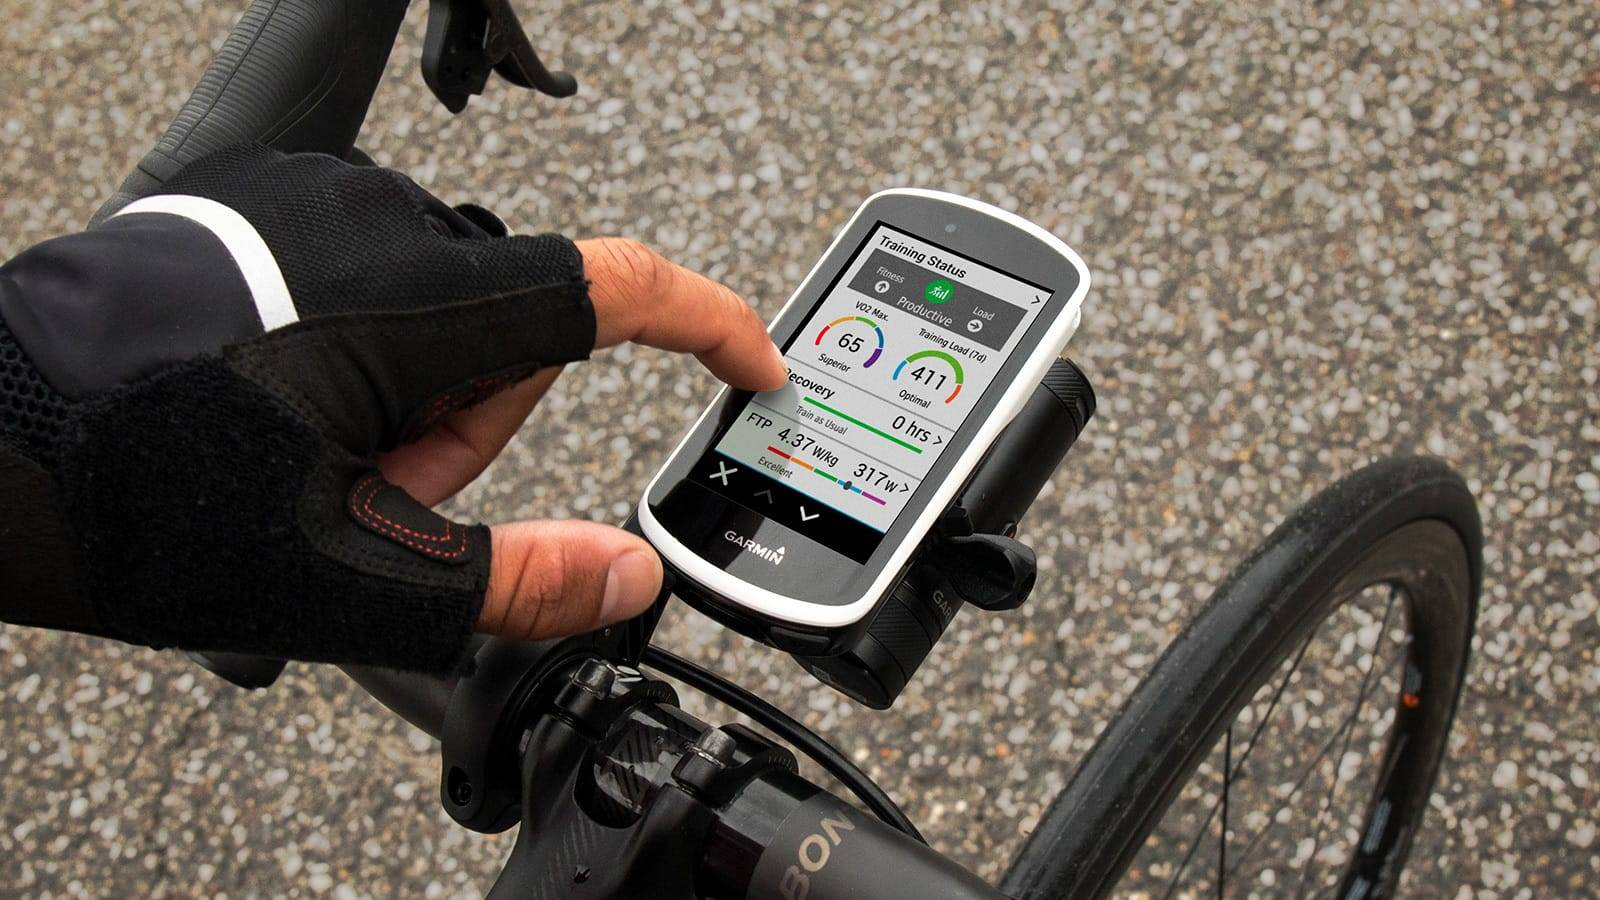 Guide to Garmin Edge GPS cycle computers